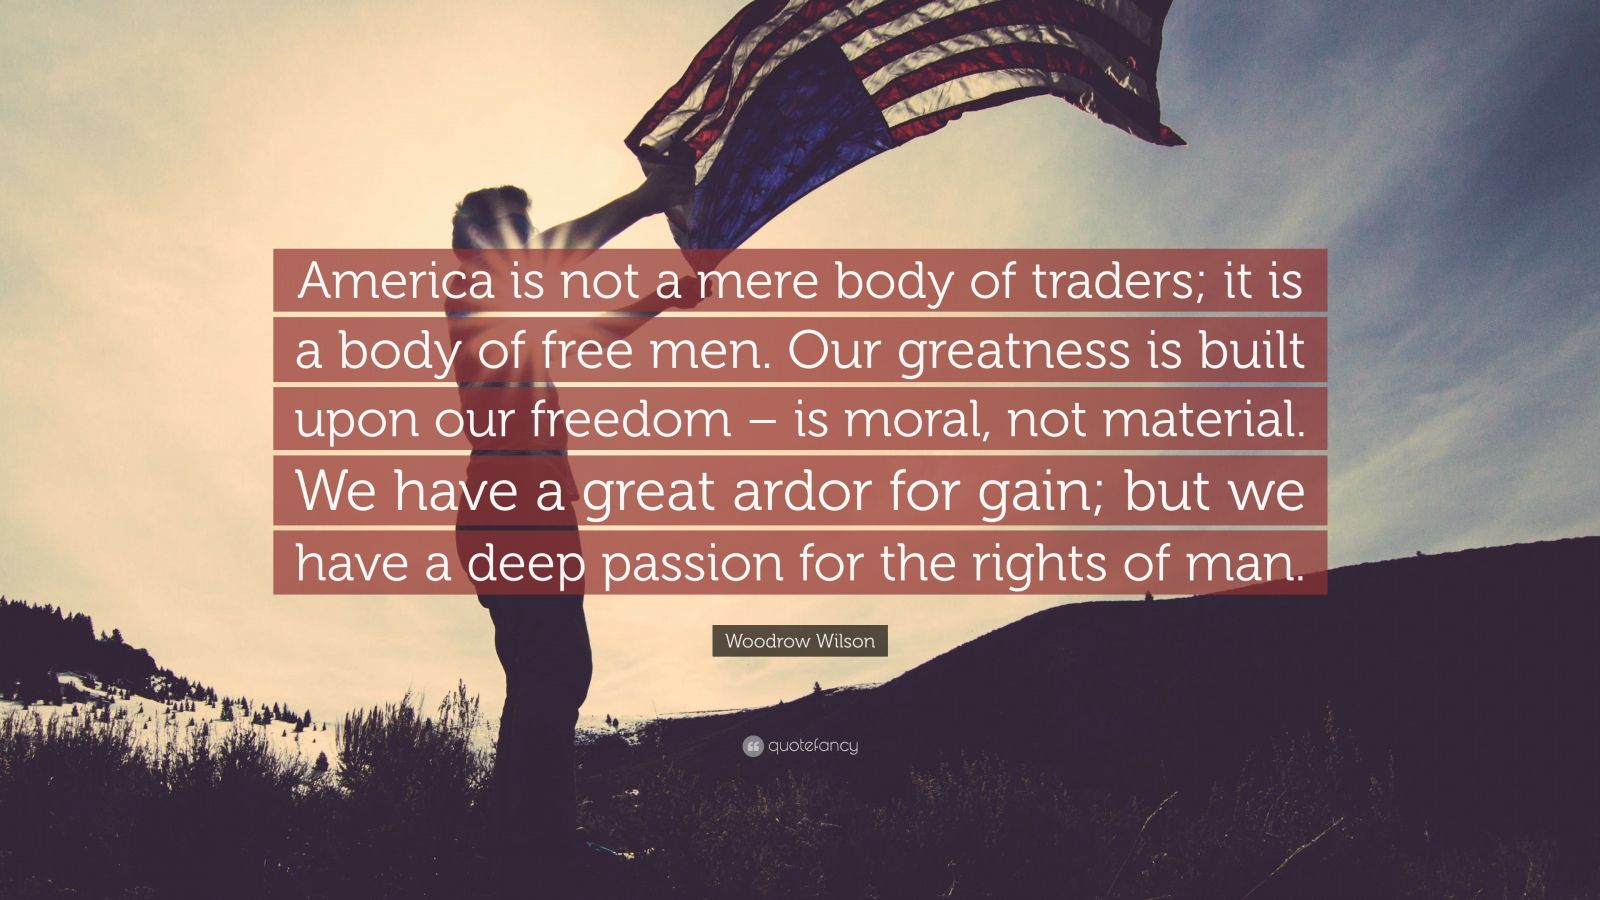 """Woodrow Wilson Quote: """"America is not a mere body of traders; it is a body of free men. Our greatness is built upon our freedom – is moral, not material. We have a great ardor for gain; but we have a deep passion for the rights of man."""""""